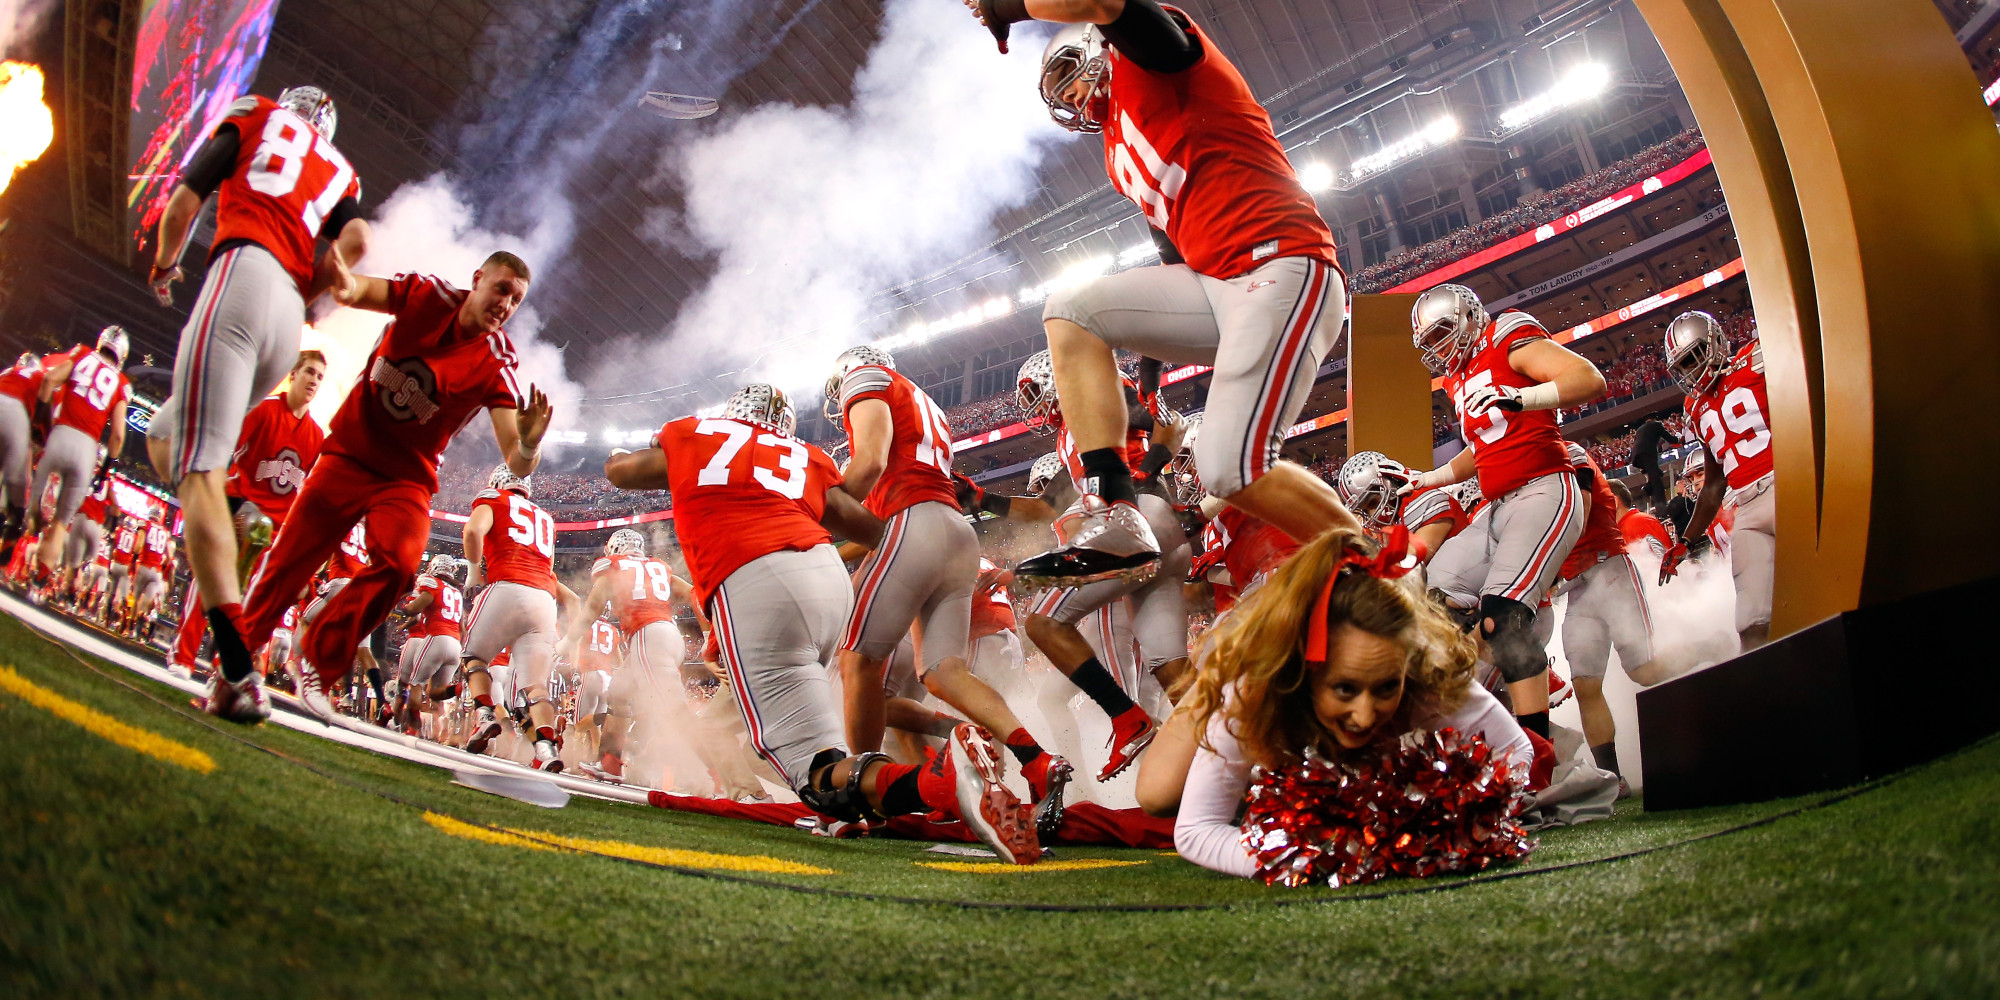 college football pictures videos breaking news look ohio state cheerleader nearly trampled by team in entrance fail